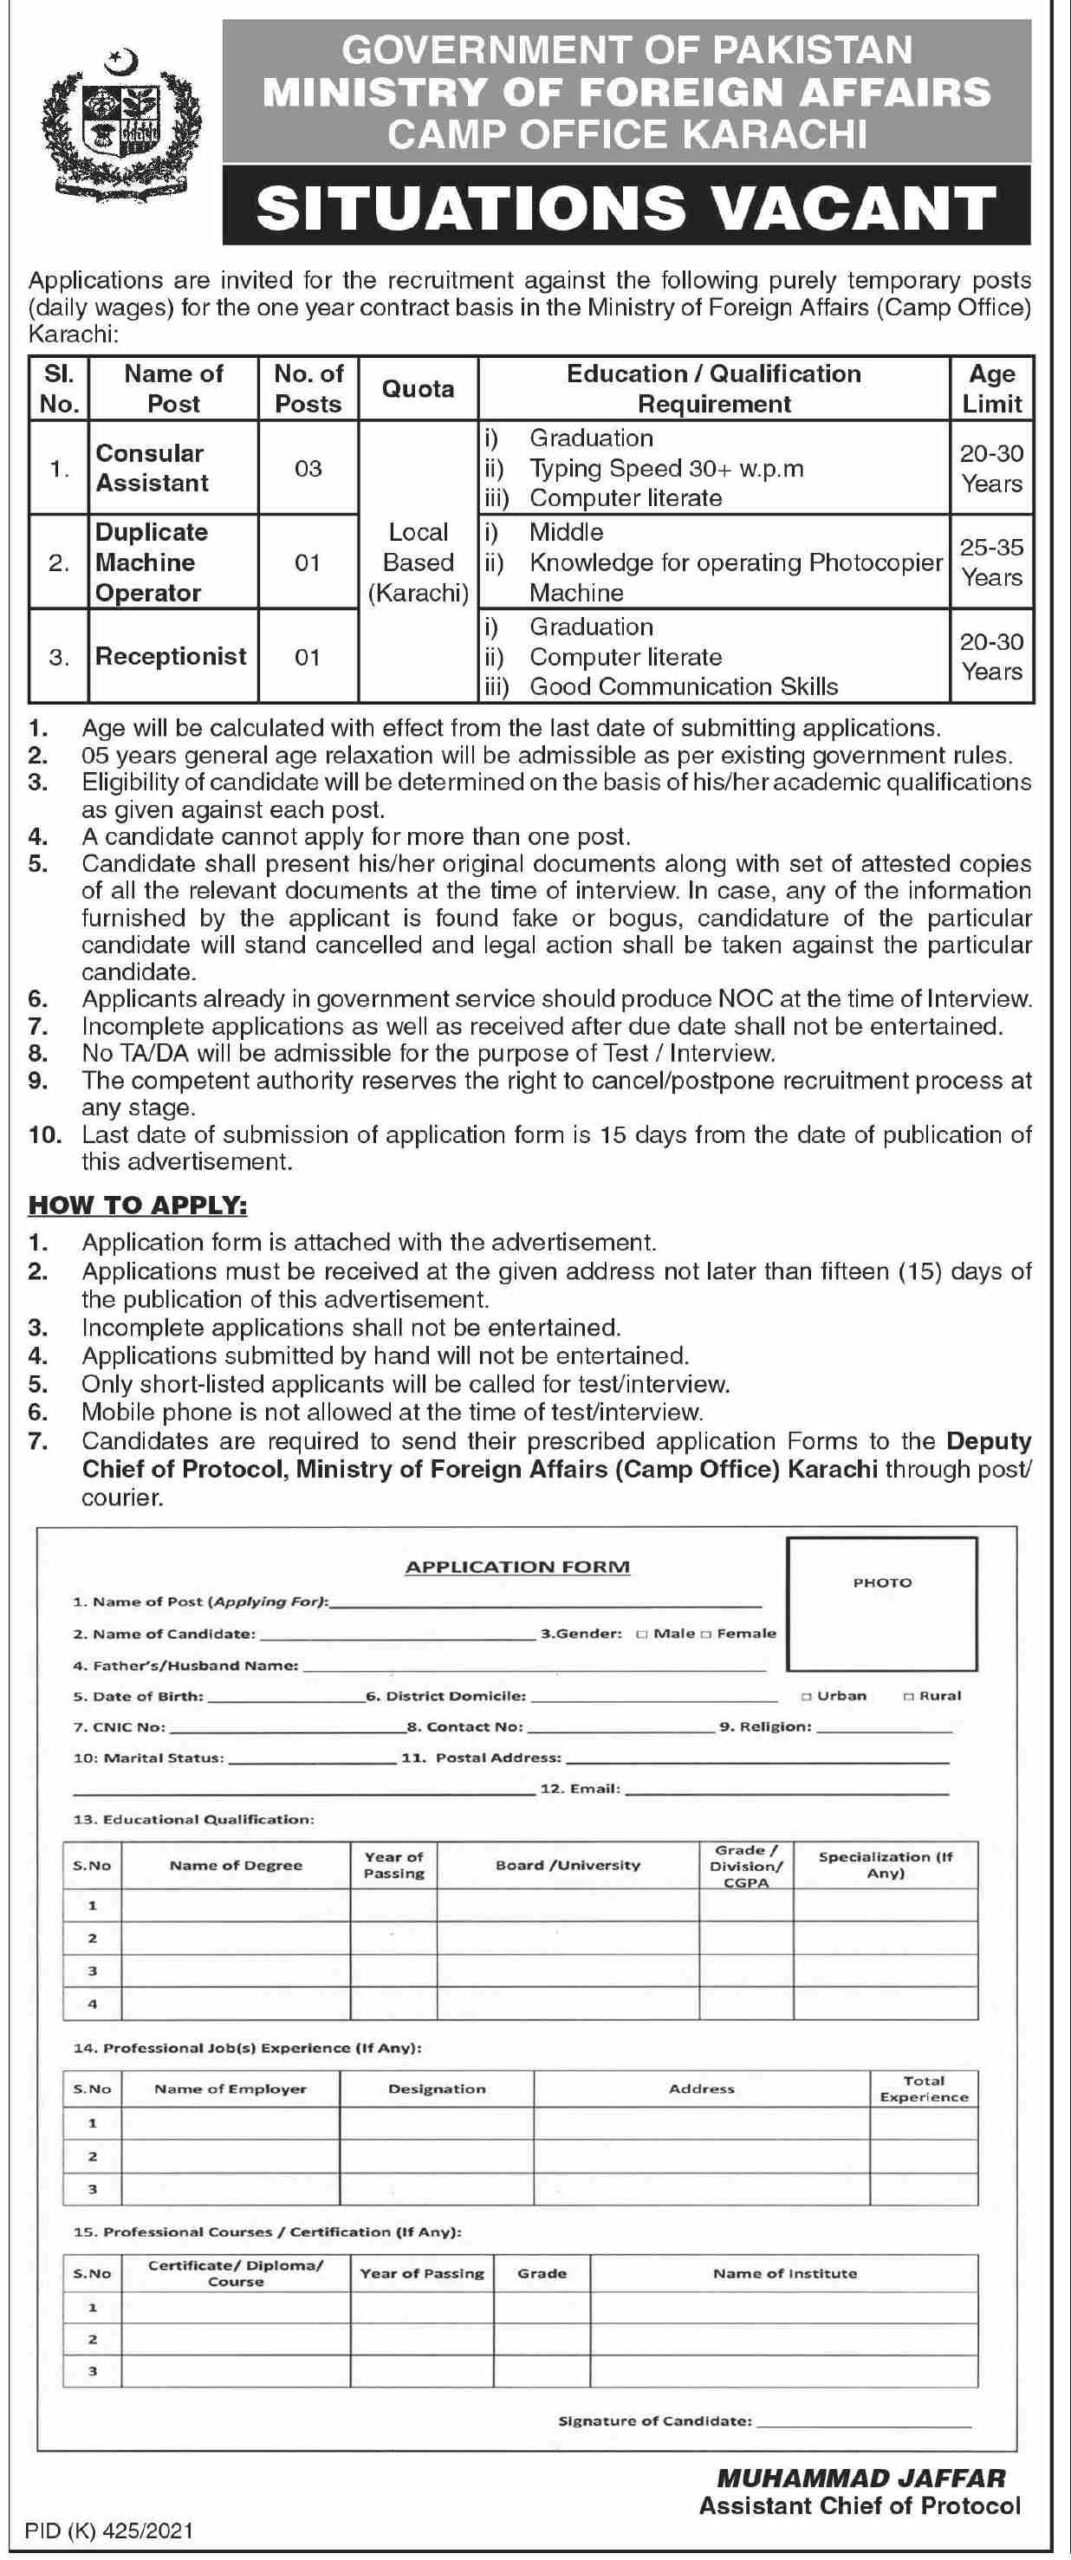 Government Jobs in Karachi Today 2021 At Ministry of Foreign Office Karachi Camp Office MOFA